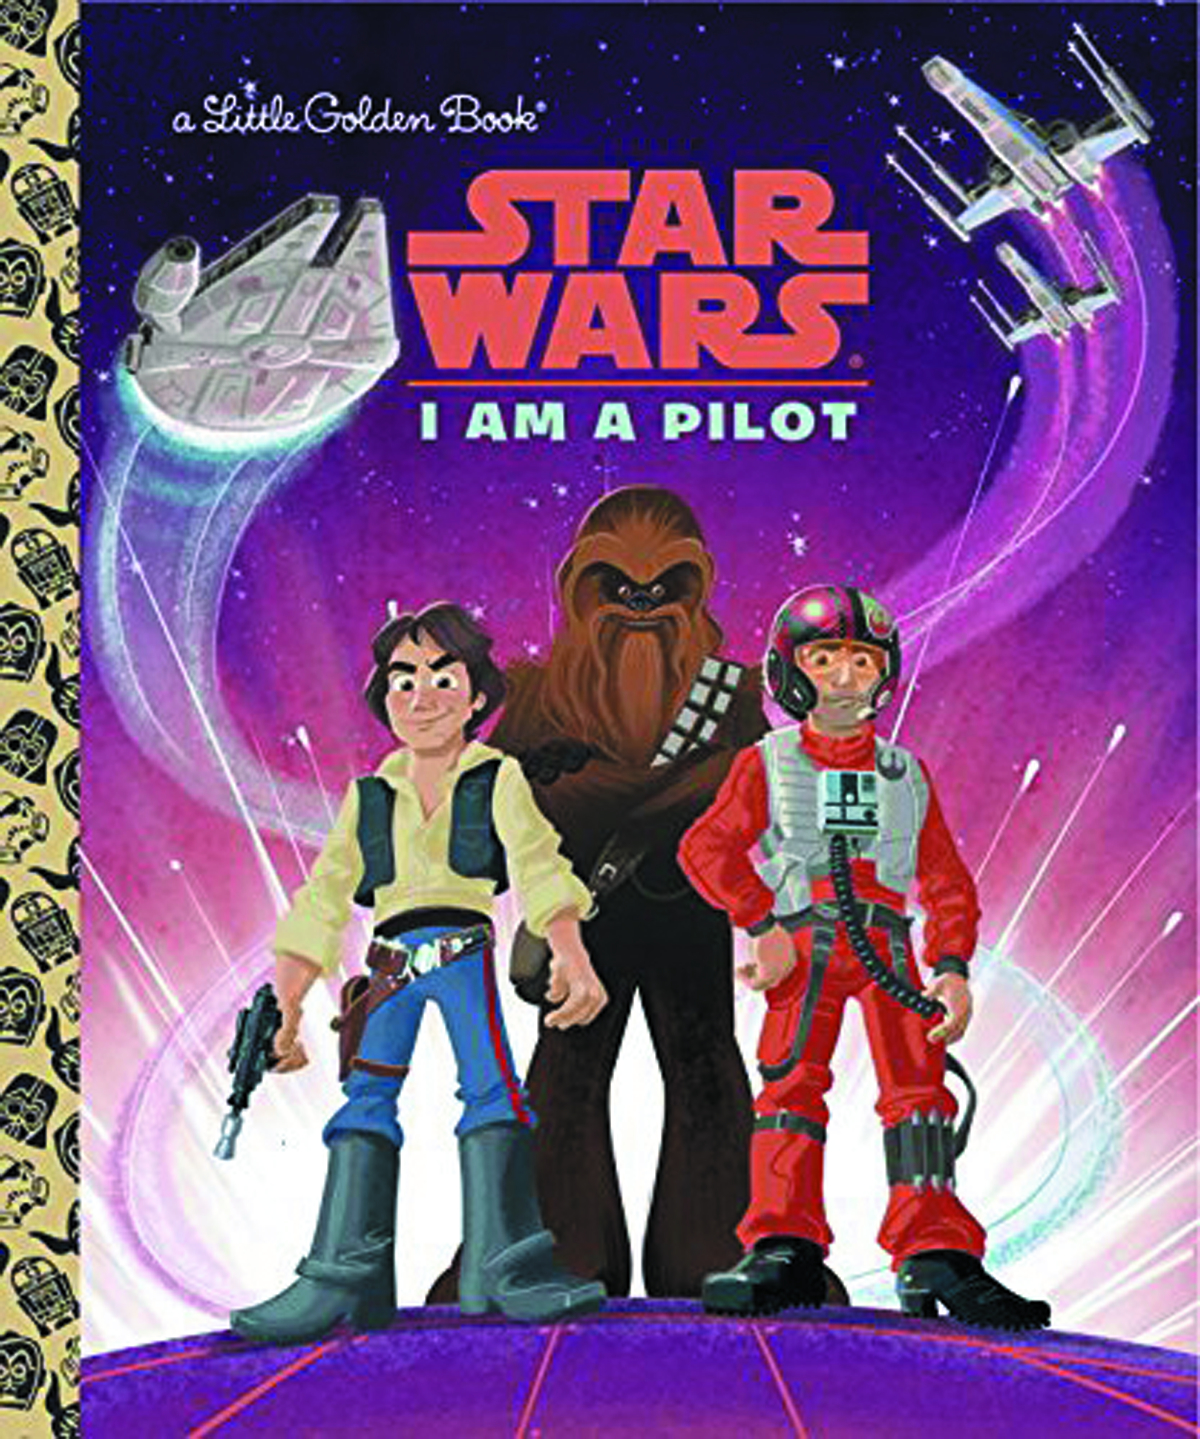 STAR WARS LITTLE GOLDEN BOOK I AM PILOT